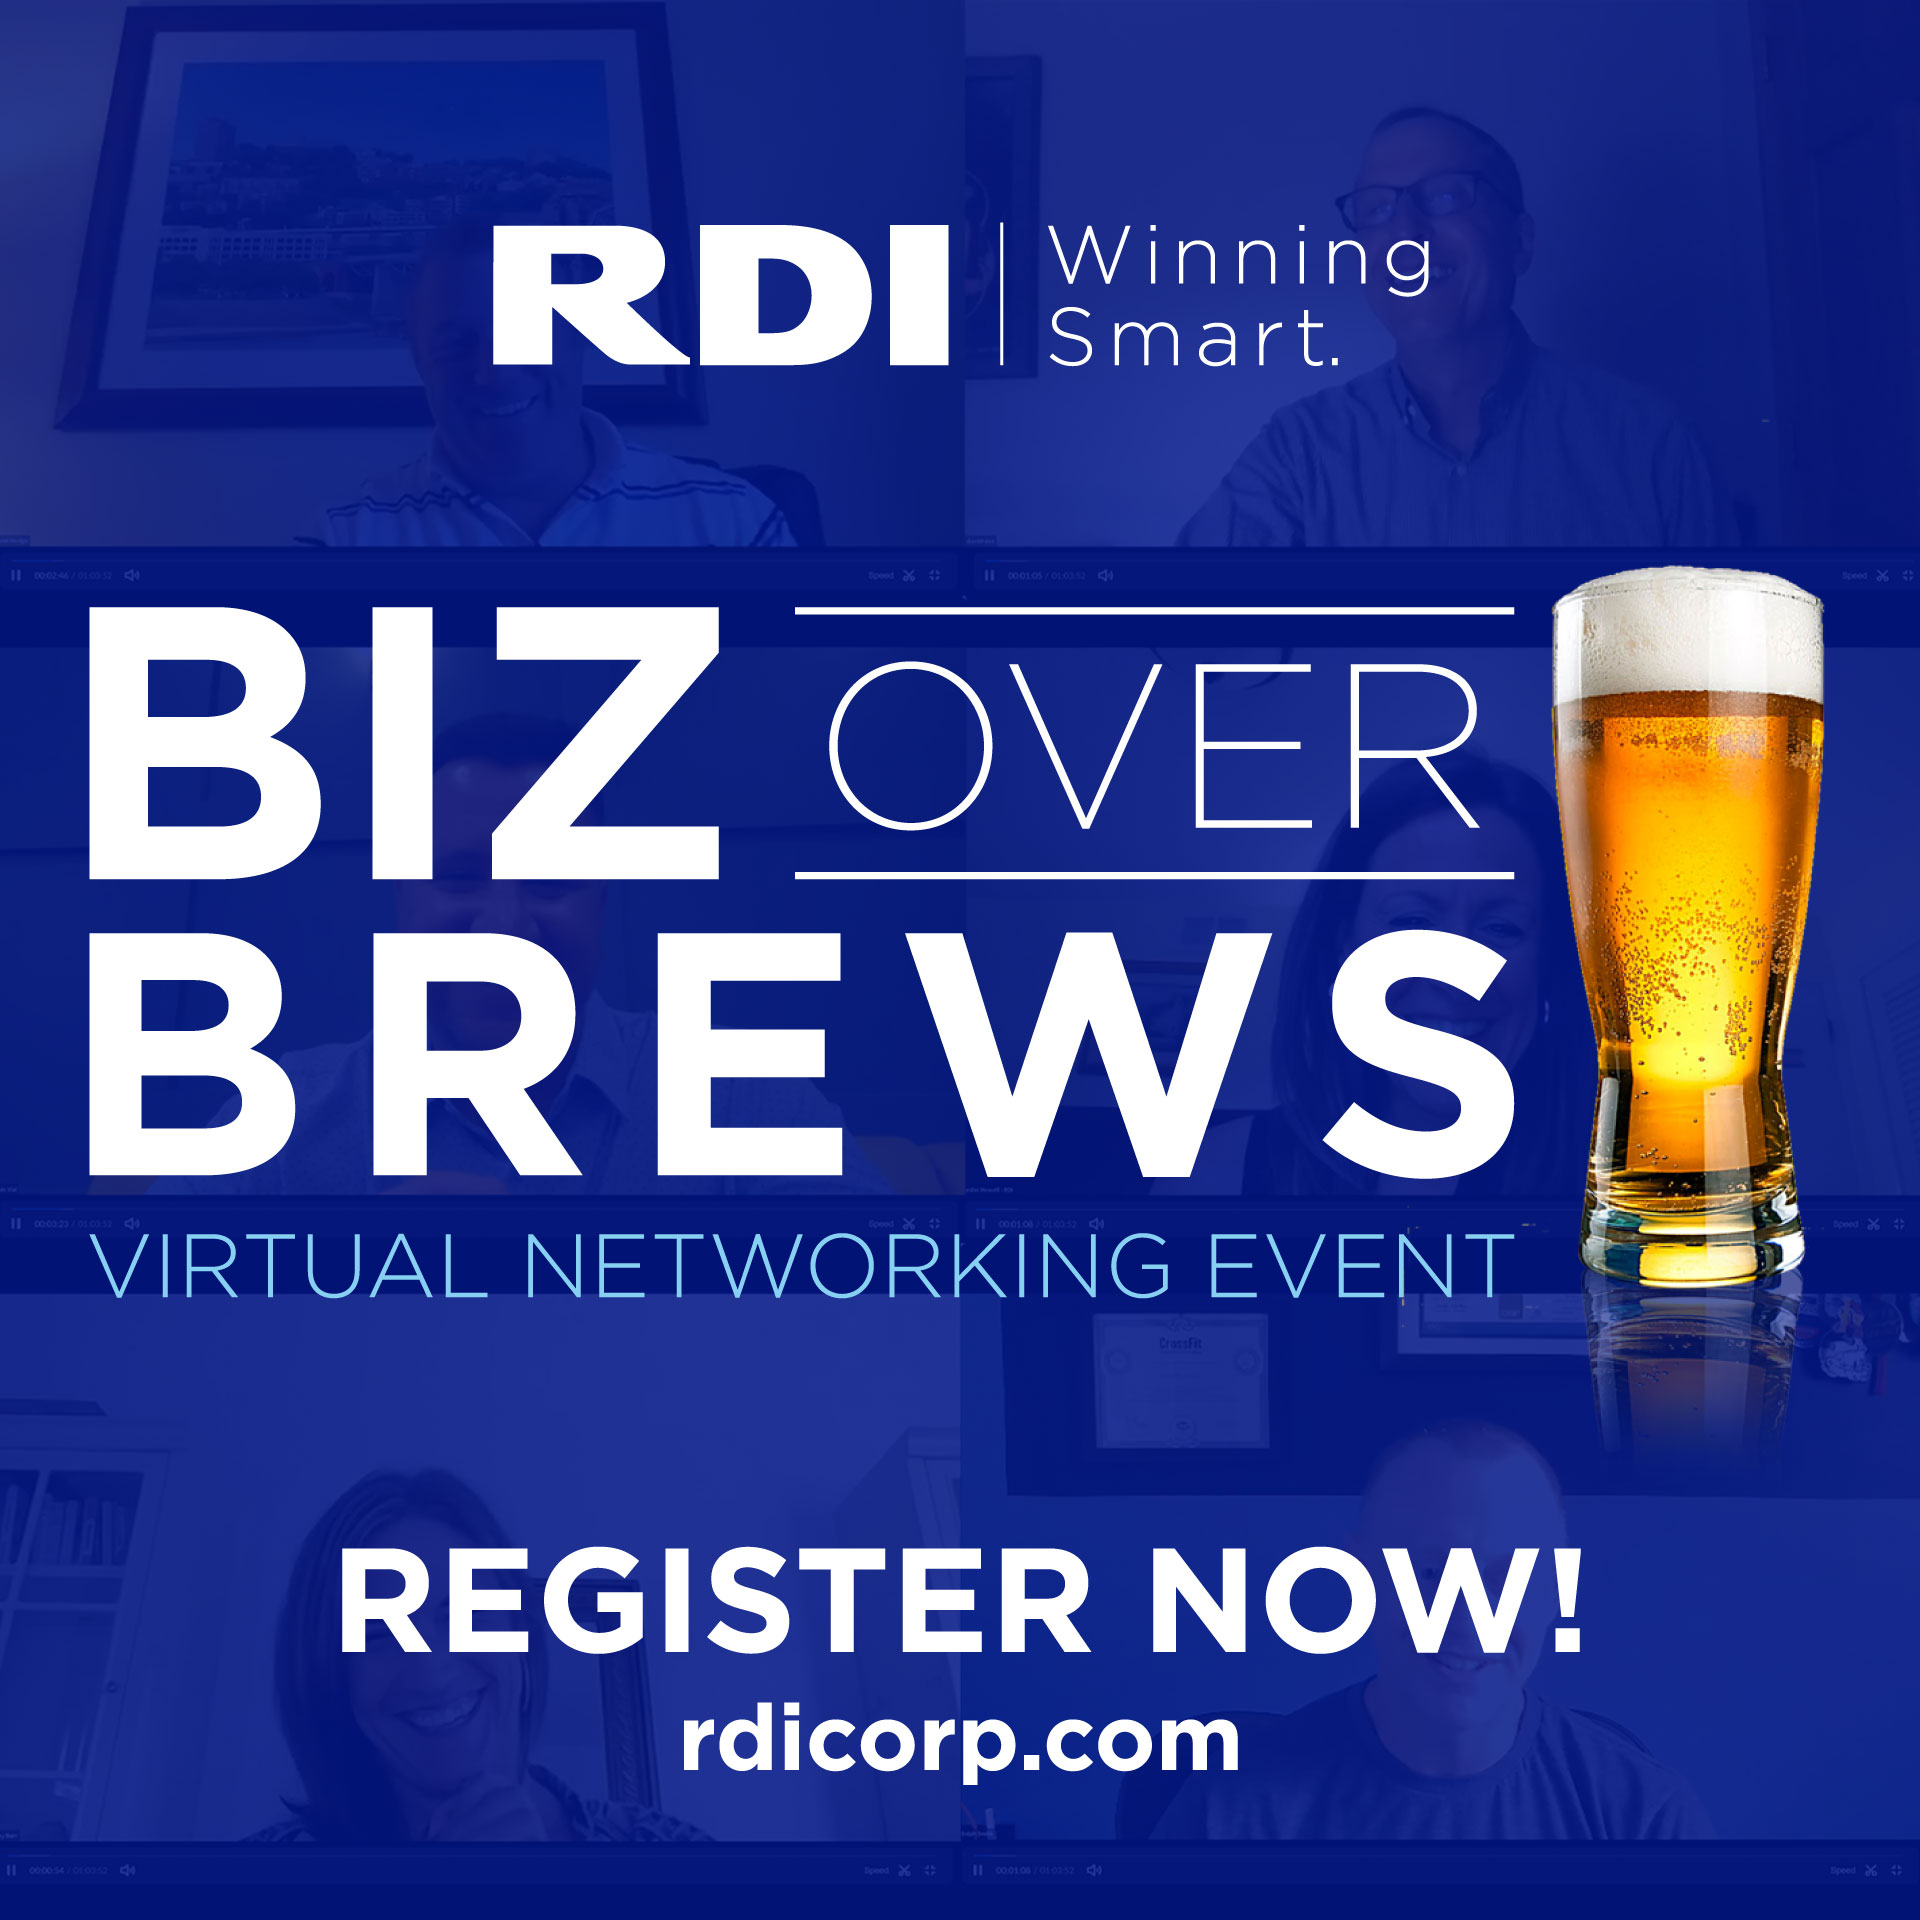 RDI Biz Over Brews Virtual Event - Winning Smart with Telehealth